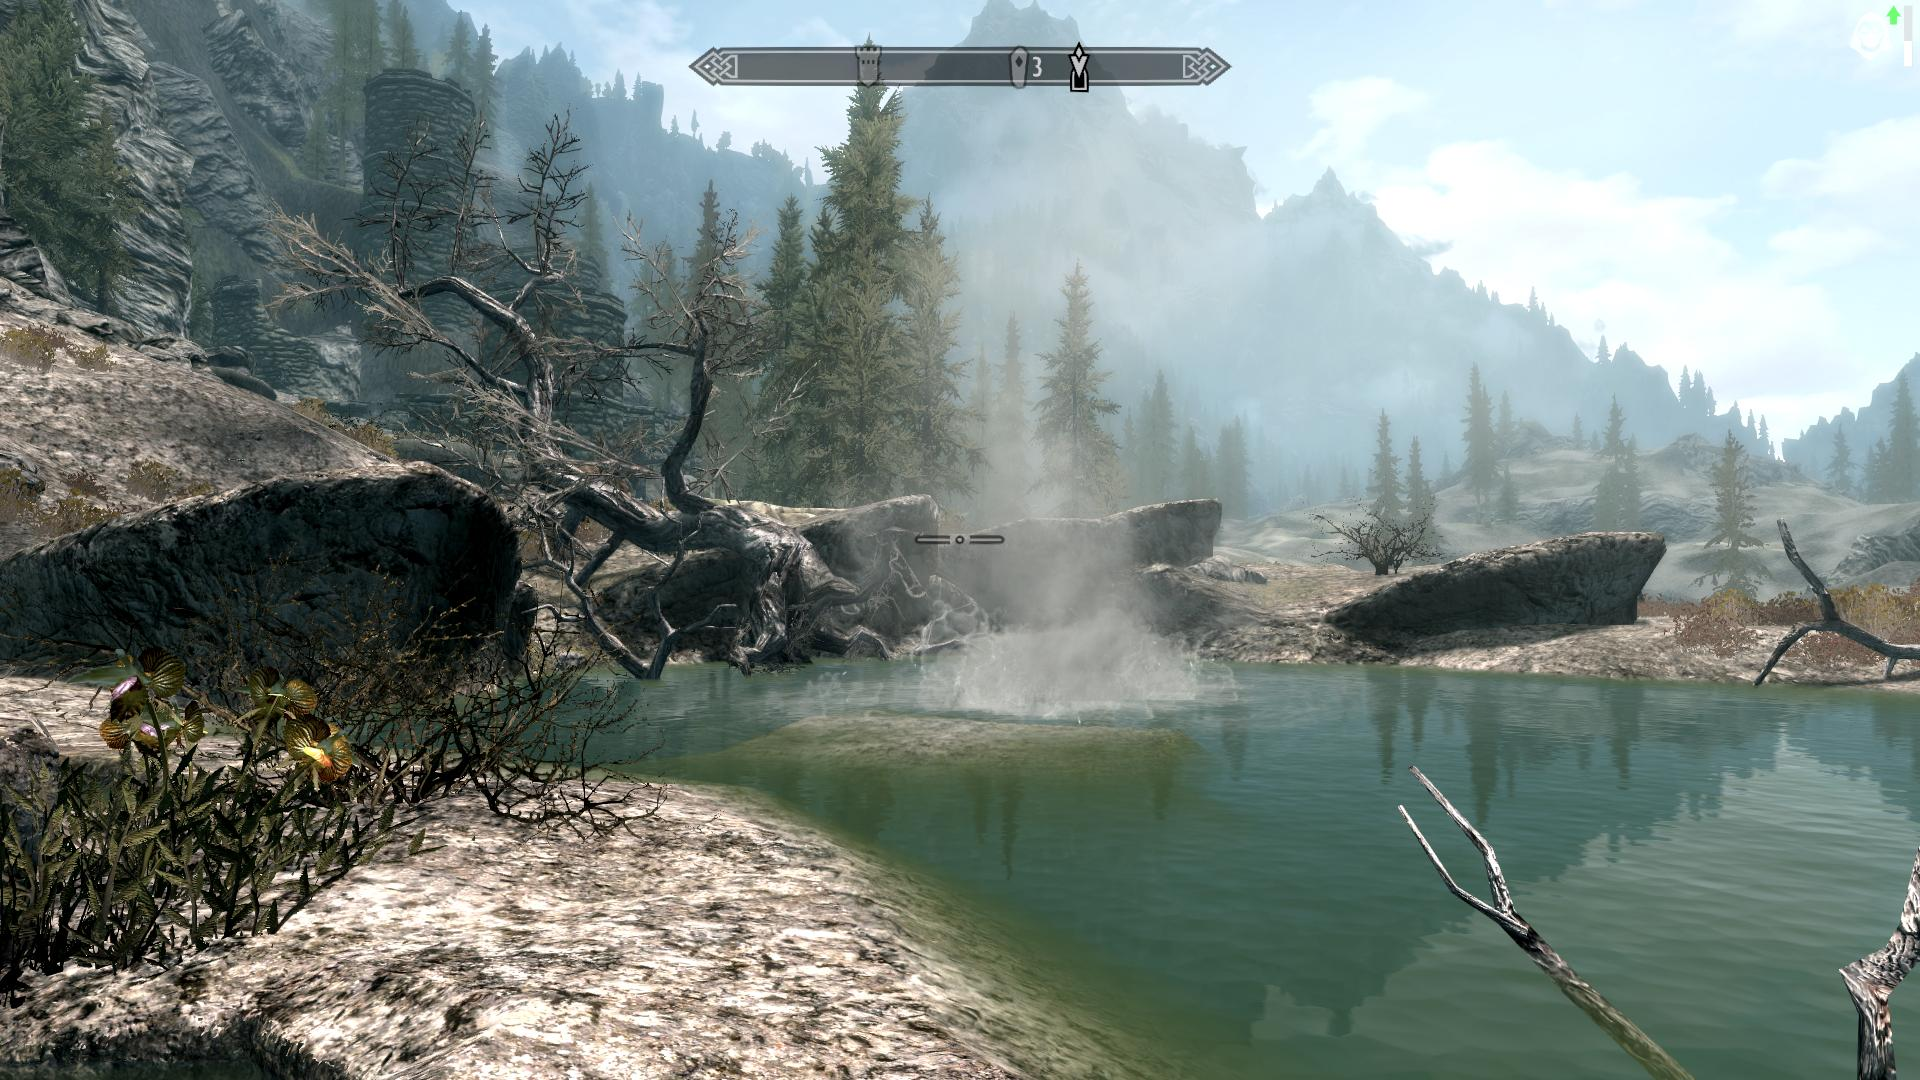 000203.Jpg - Elder Scrolls 5: Skyrim, the